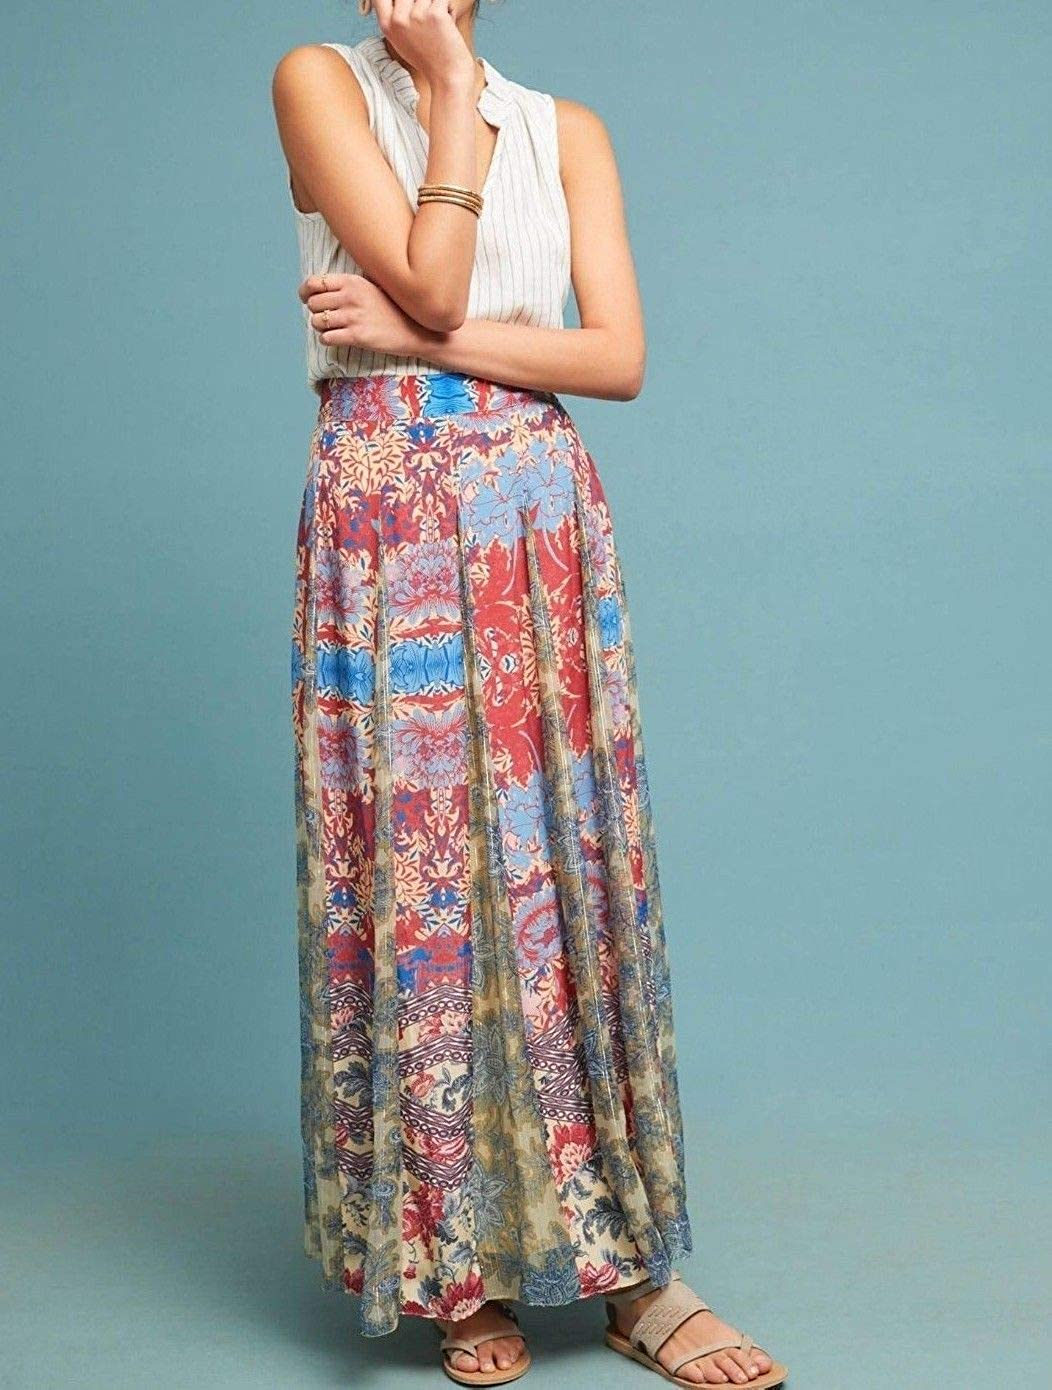 9a378517cd558 Anthropologie Louvre Maxi Skirt by Hemant & Nandita - NWT (XS) at Amazon  Women's Clothing store: